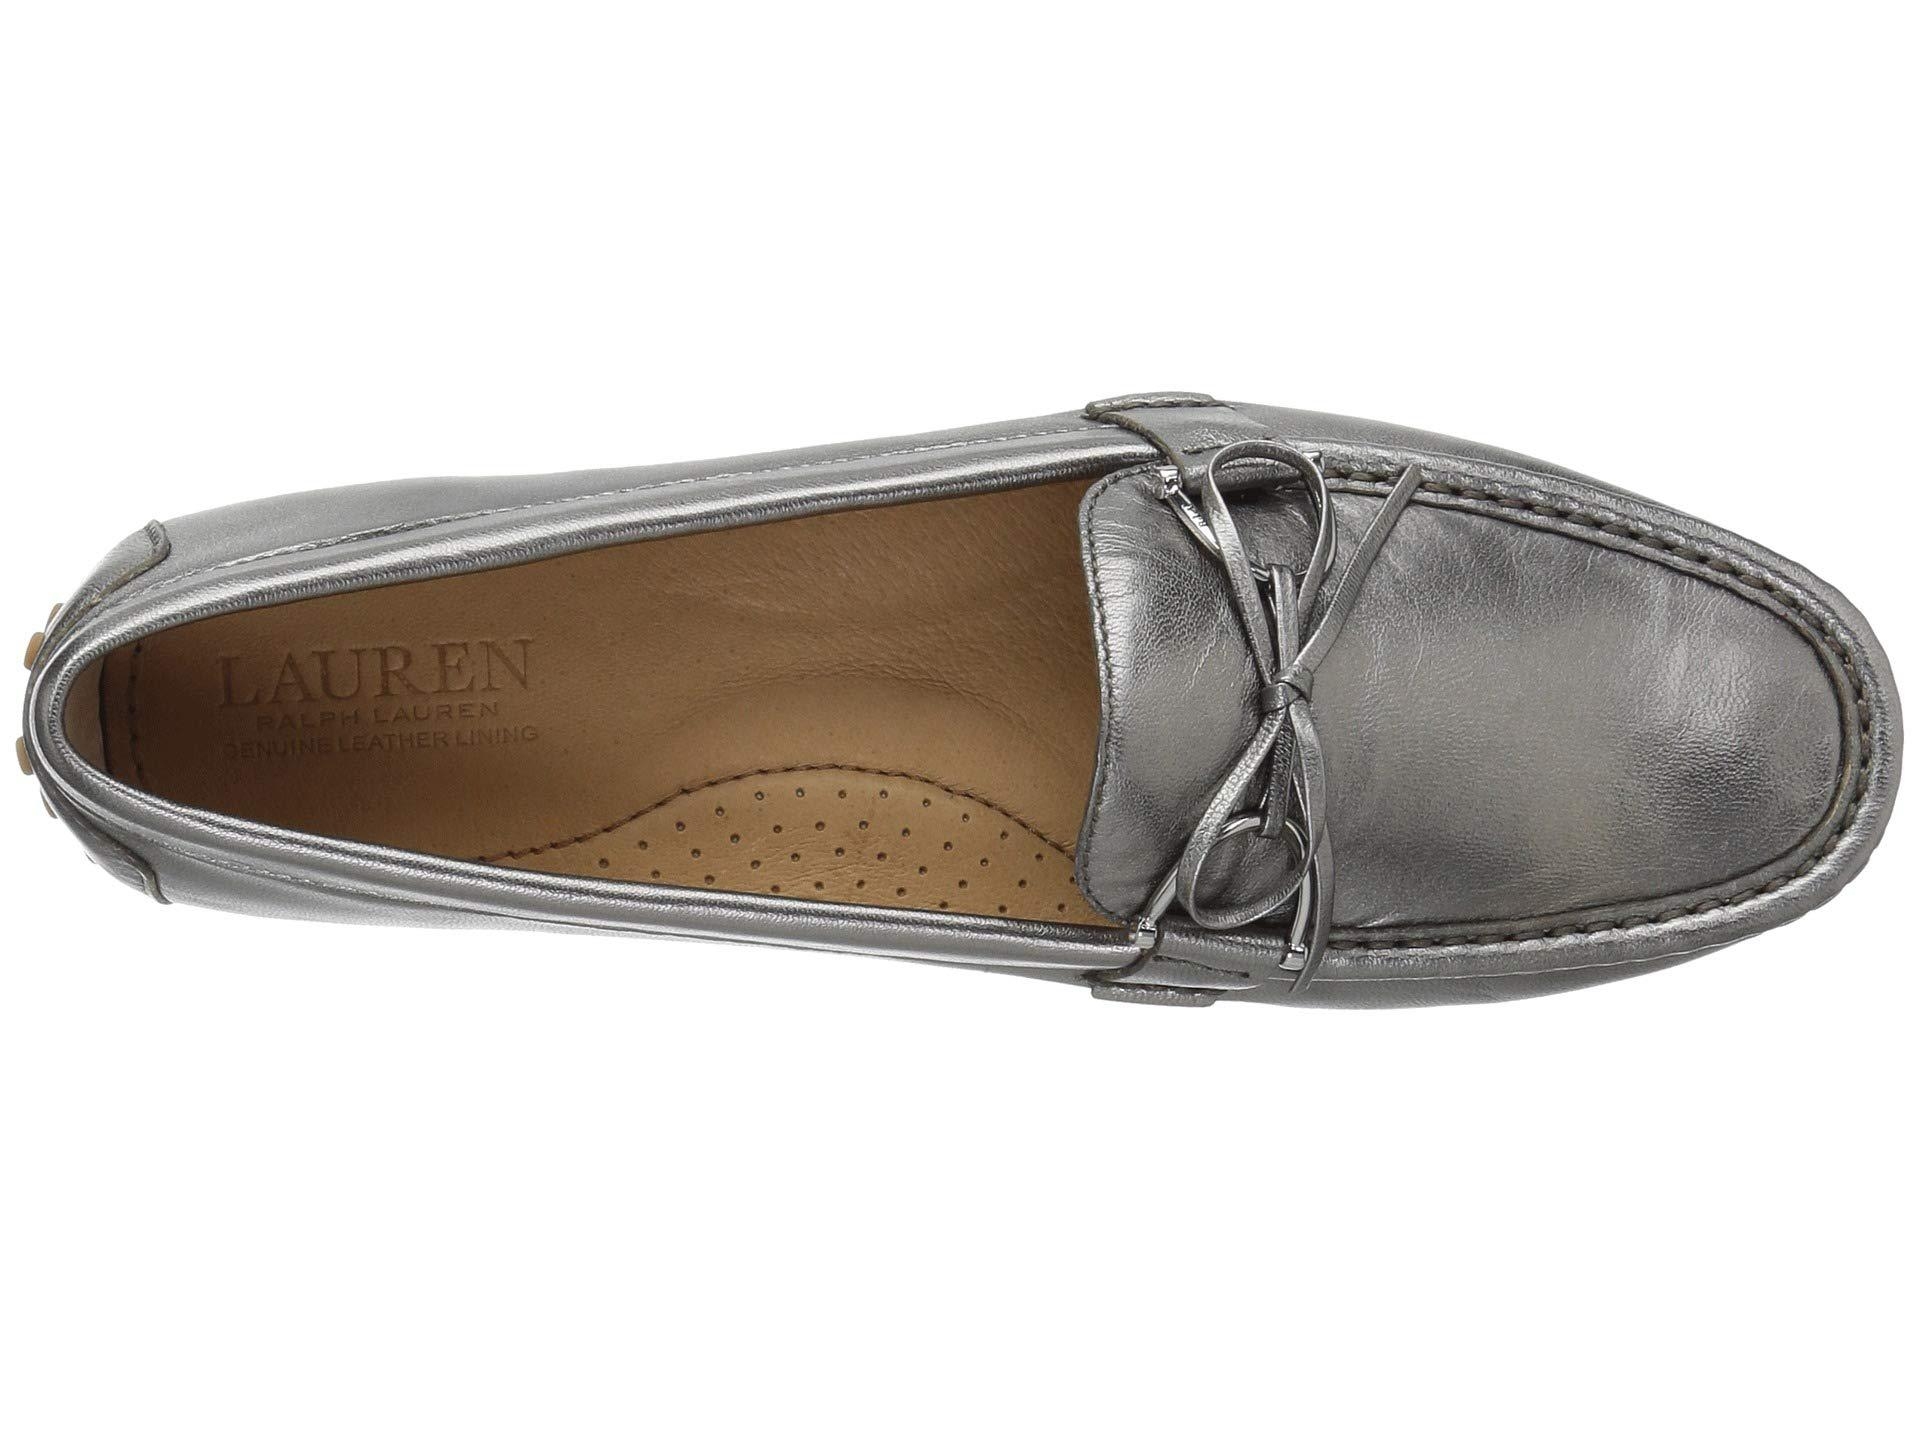 1f434a1b711 Lyst - Lauren by Ralph Lauren Briley Moccasin Loafer (gunmetal ...